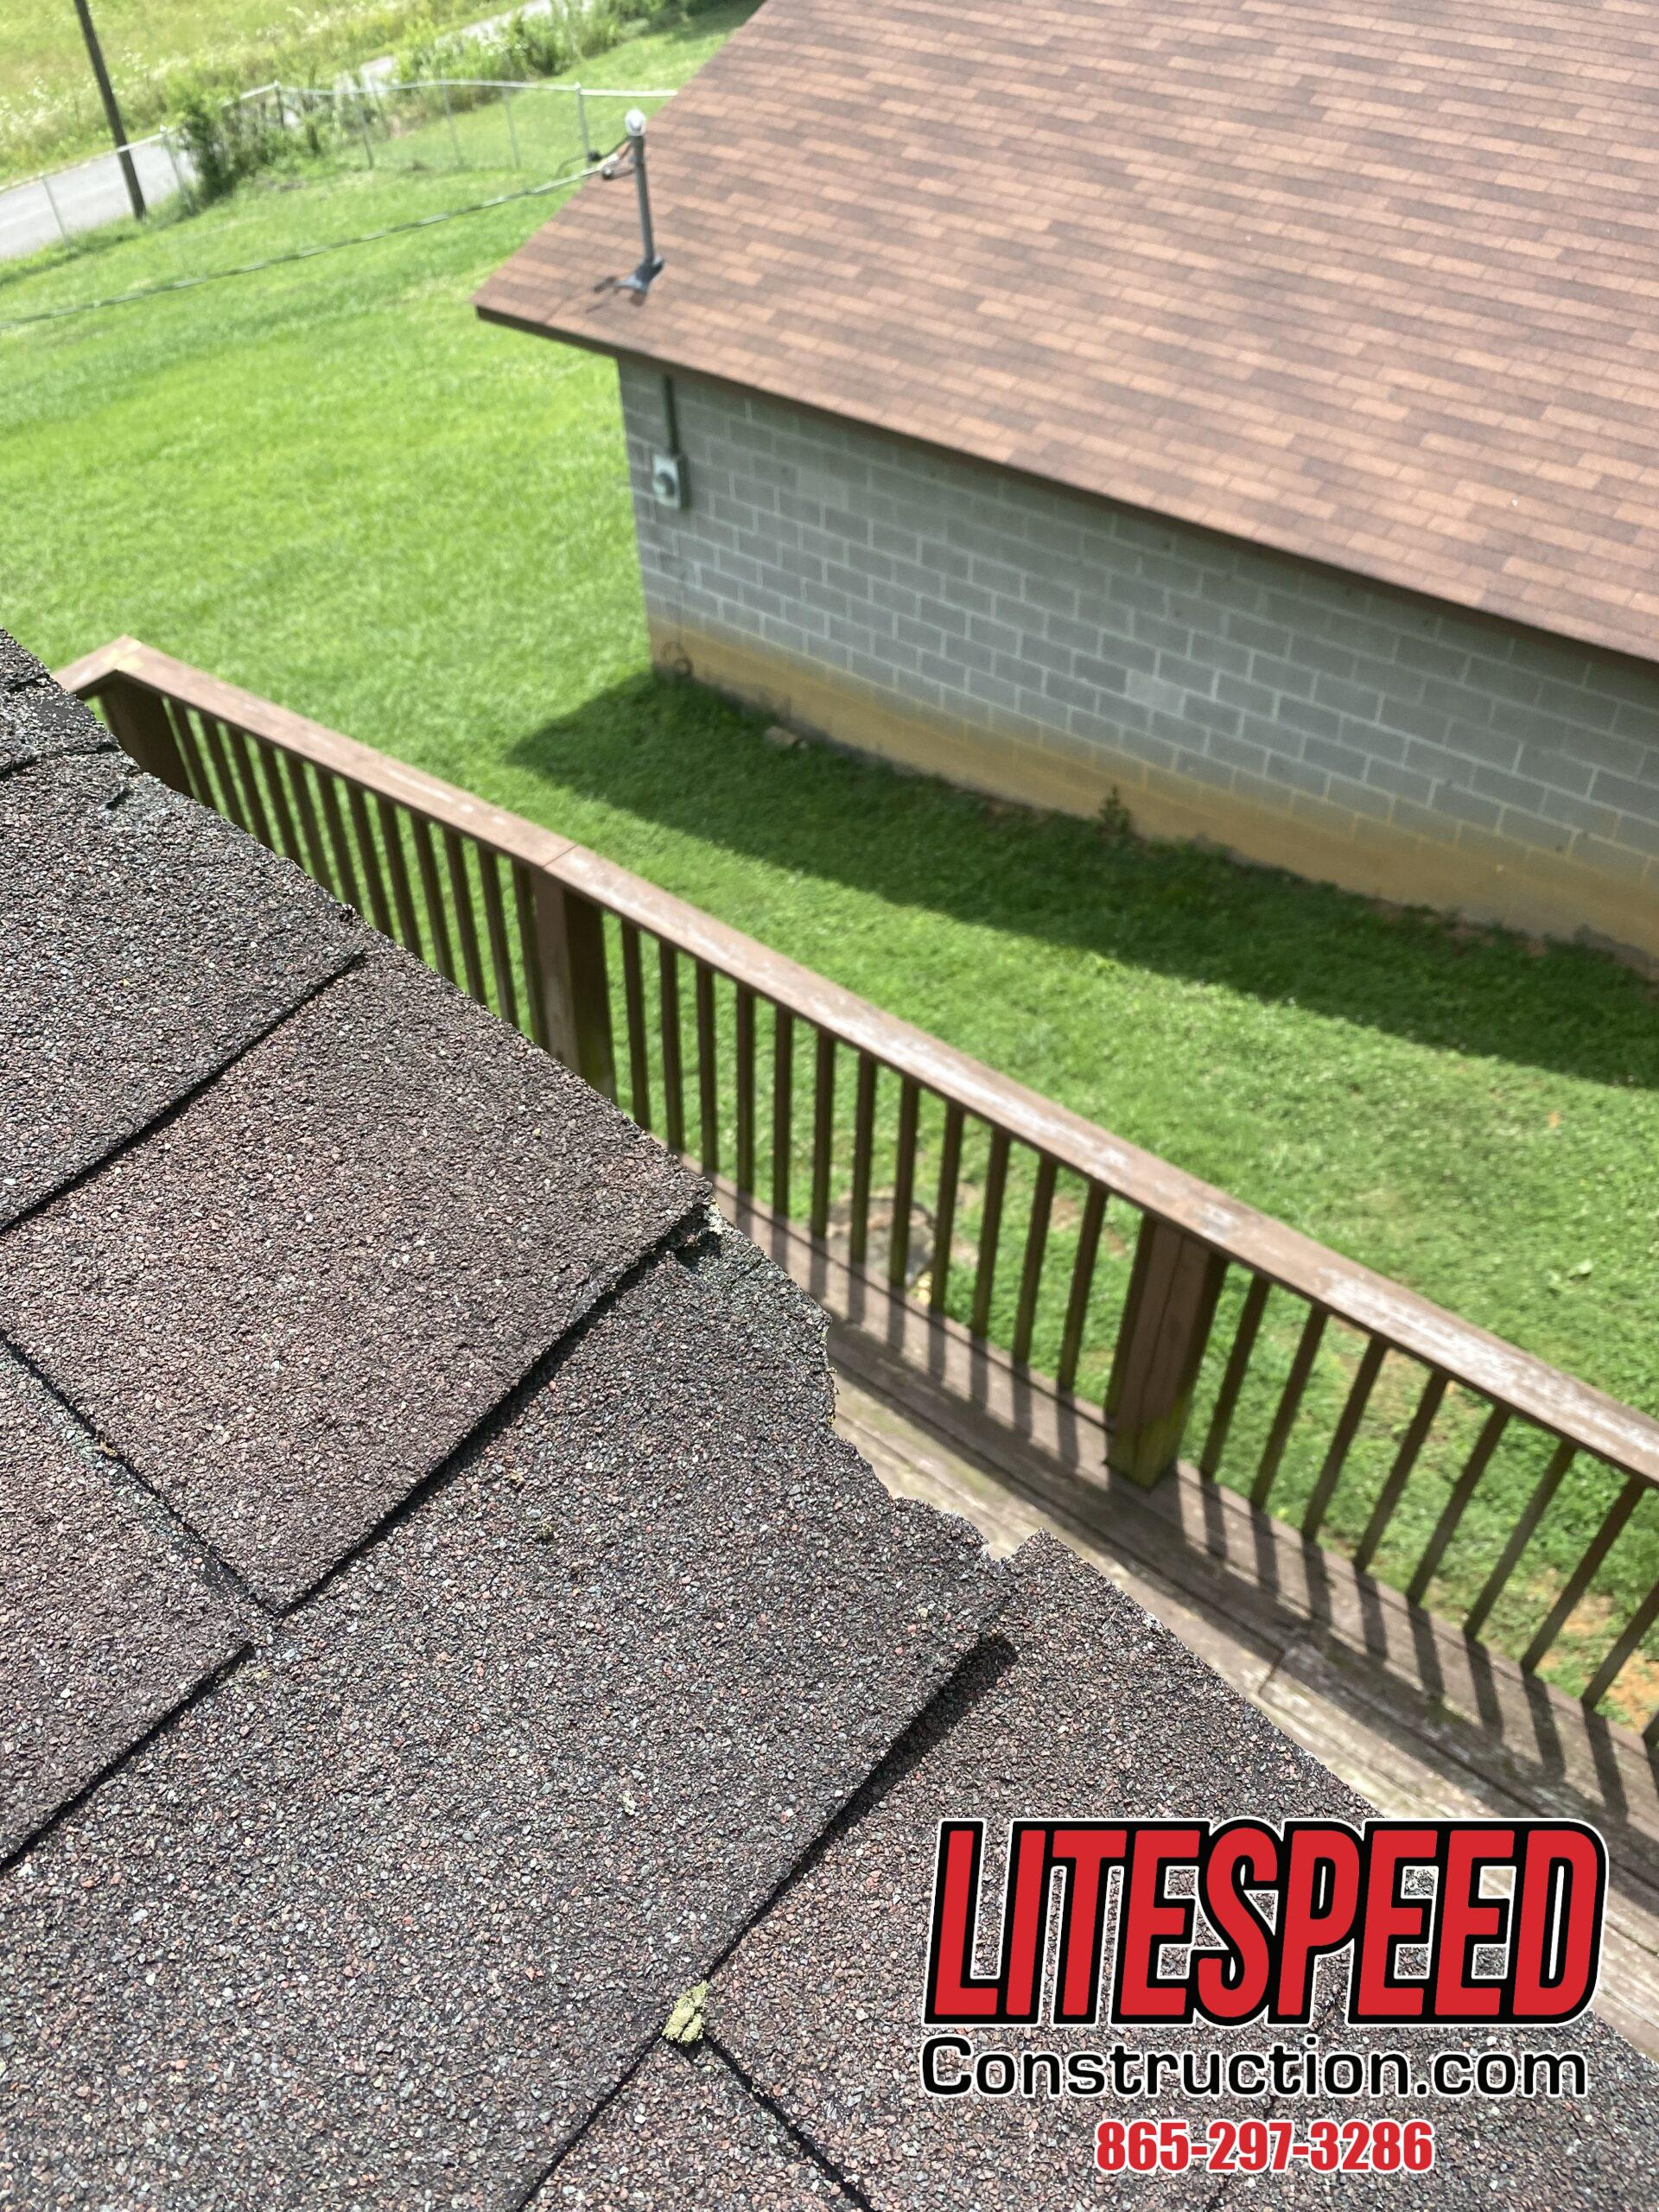 this is a picture of a three tab shingle at the edge of a roof that has broken off